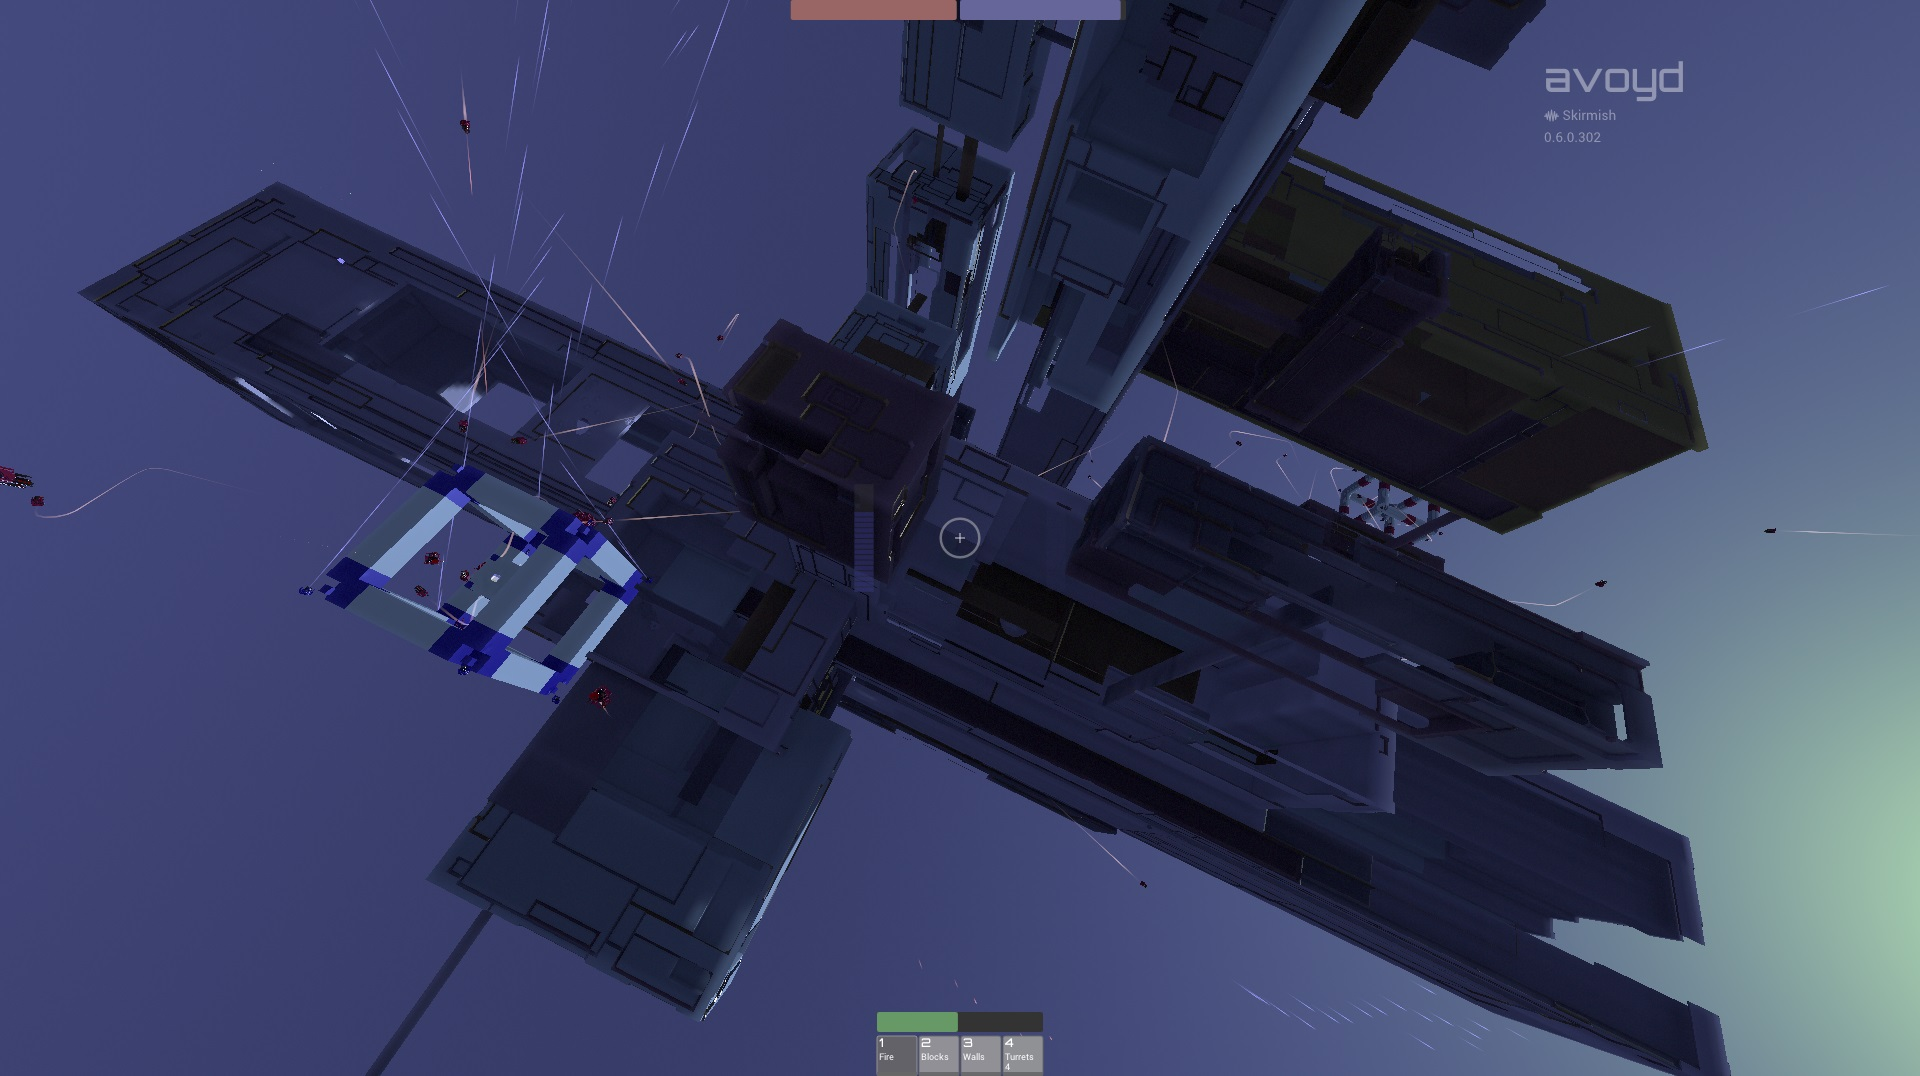 In-game screenshot of Skirmish mode in Avoyd, taken from afar, shows the friendly (blue) and opposition (red) MegaSpawners and drones having a go at each other (hard difficulty). Procedural world seed: 14CFEB5C